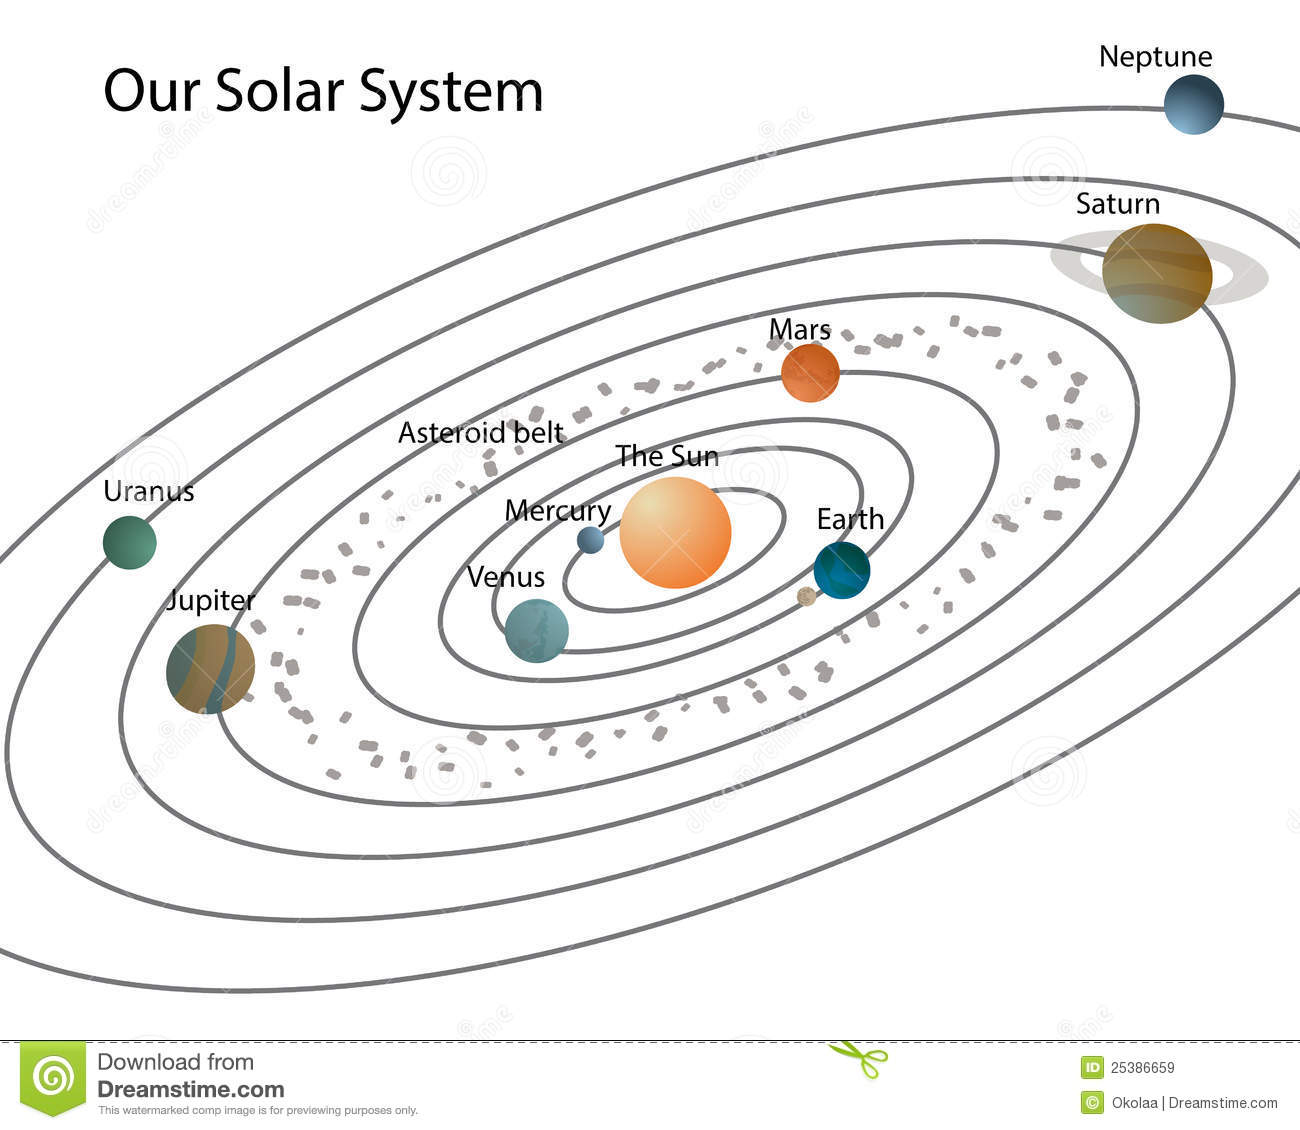 Activities further Greek God Symbols in addition Lizenzfreie Stockbilder Unser Sonnensystem Image25386659 together with  in addition Preschool Ideas Out Of This World Solar System. on saturn in our solar system